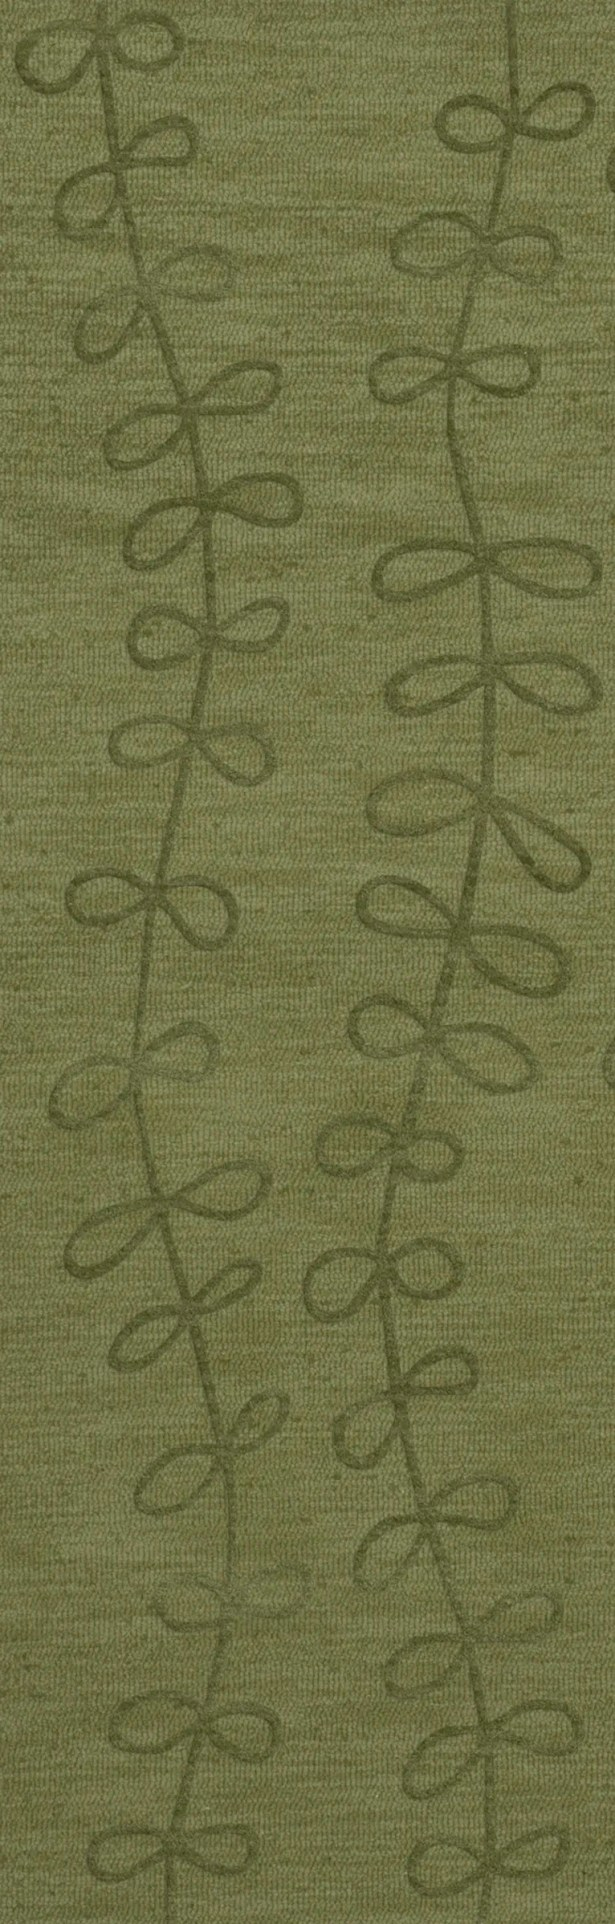 Bella Machine Woven Wool Green Area Rug Rug Size: Runner 2'6